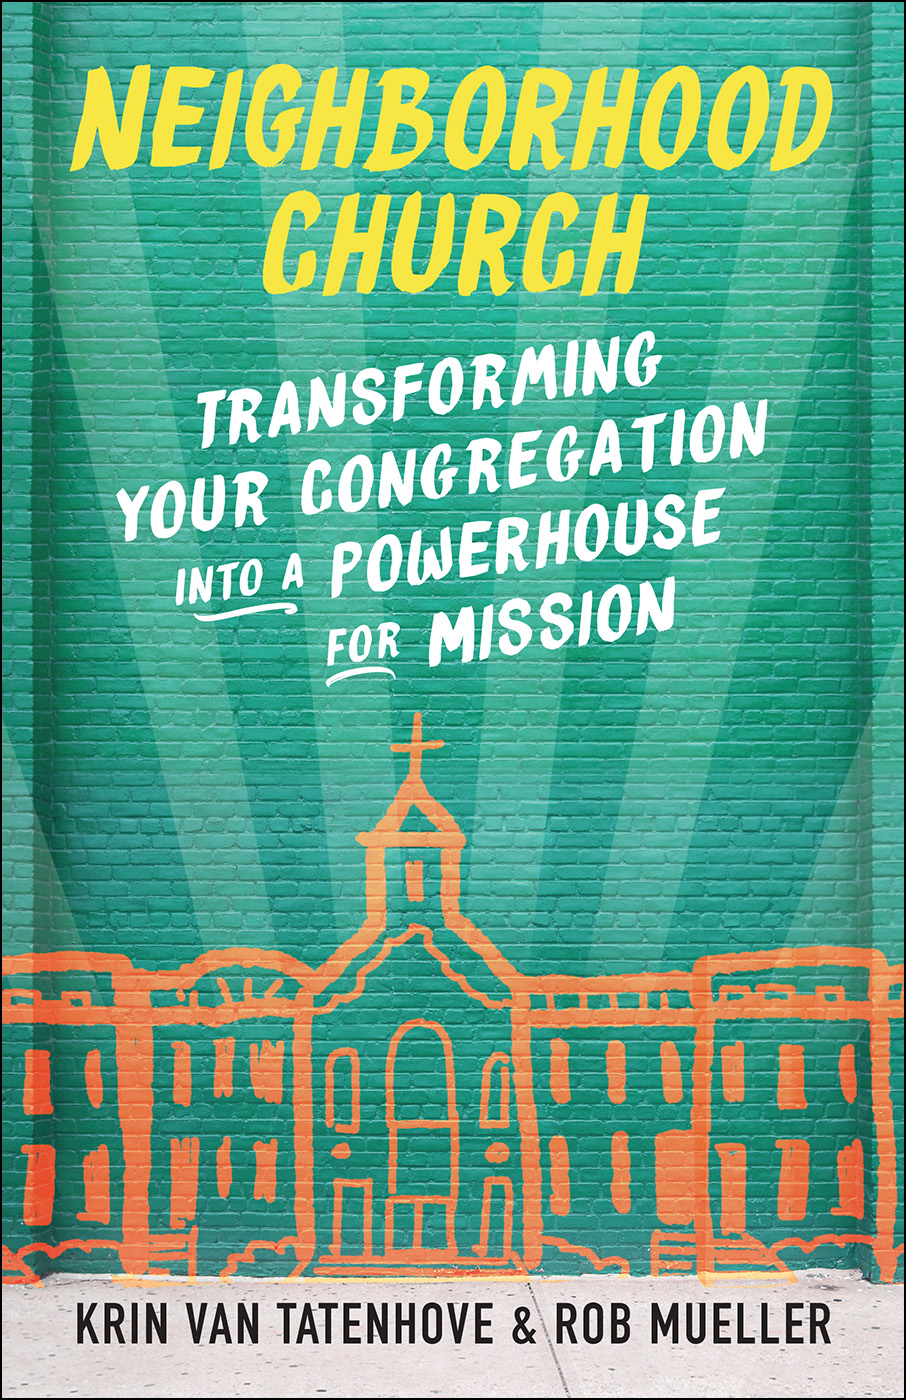 Image of book cover - Neighborhood Church